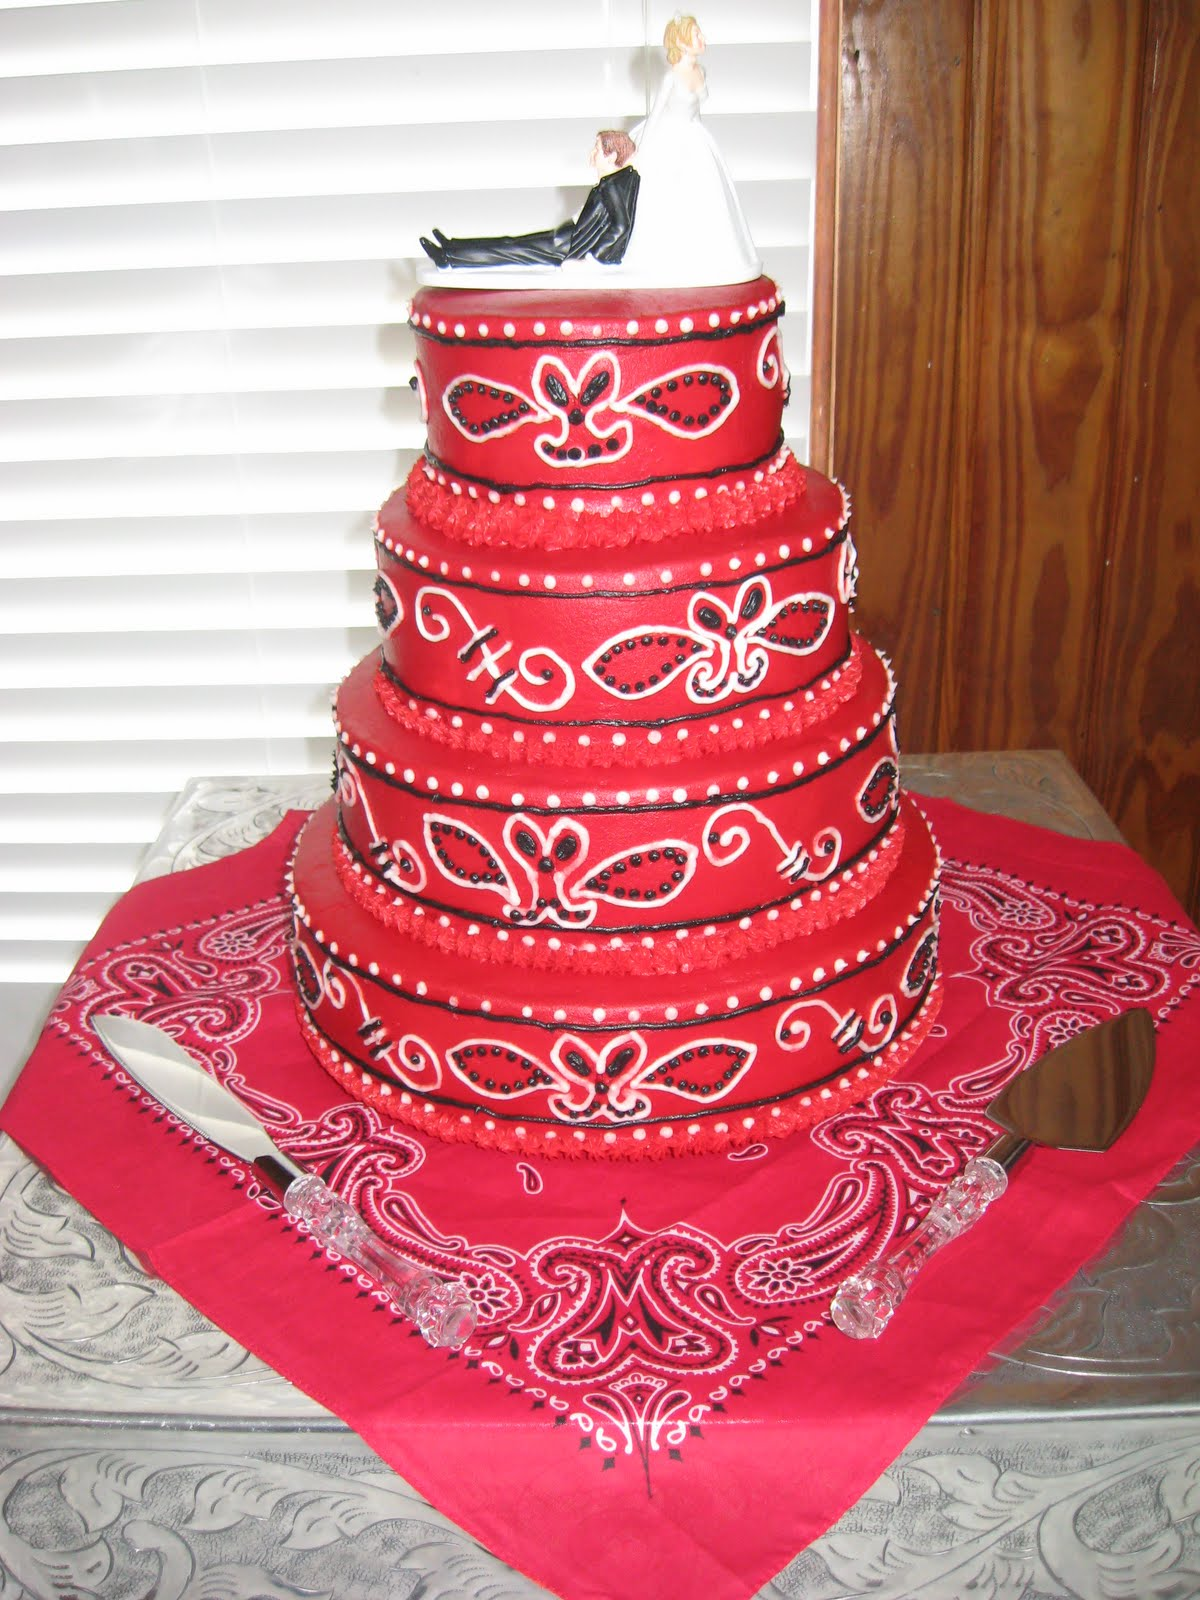 Delectable Sweets By The Smiths Bandana Wedding Cake